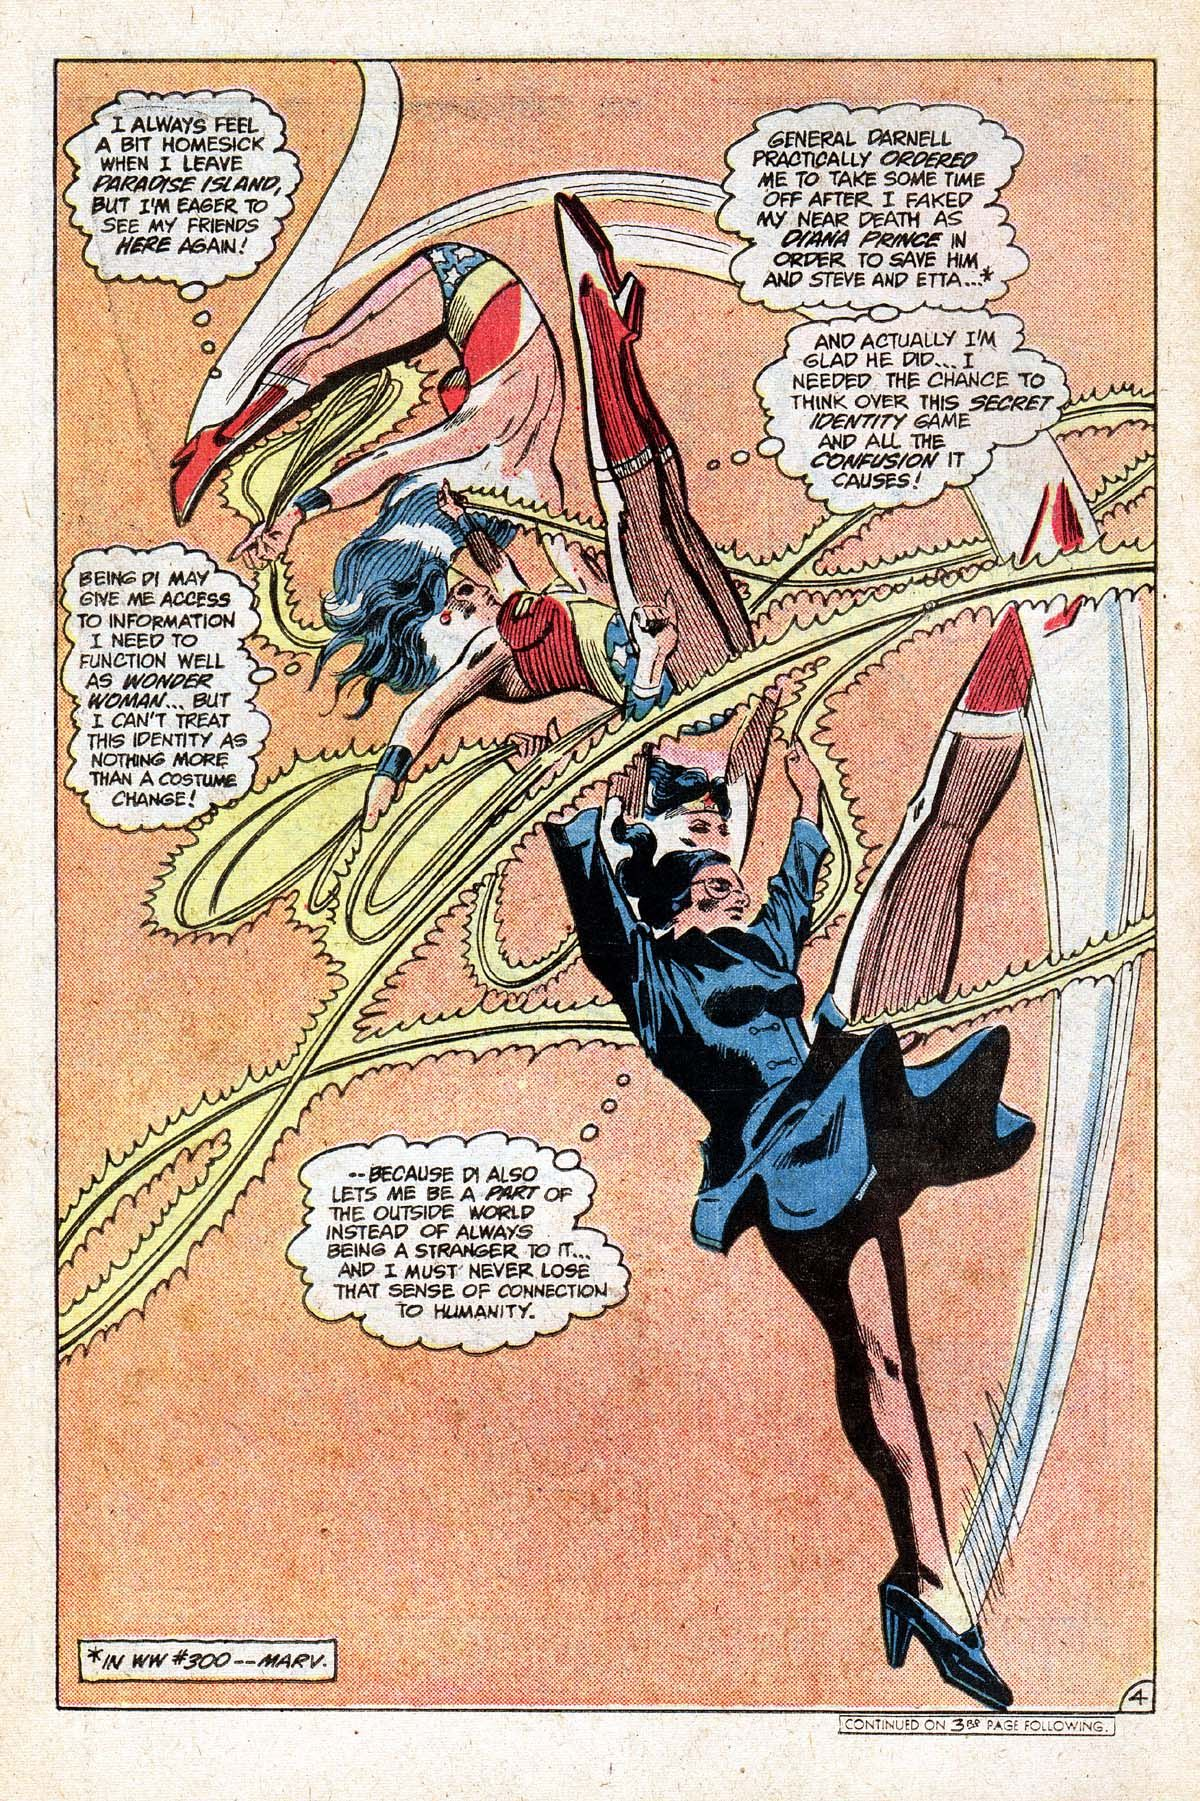 Wonder Woman as mid-air tumbler, changing into Diana Prince. From Wonder Woman # 303, May 1983. Art by the great Gene Colan.